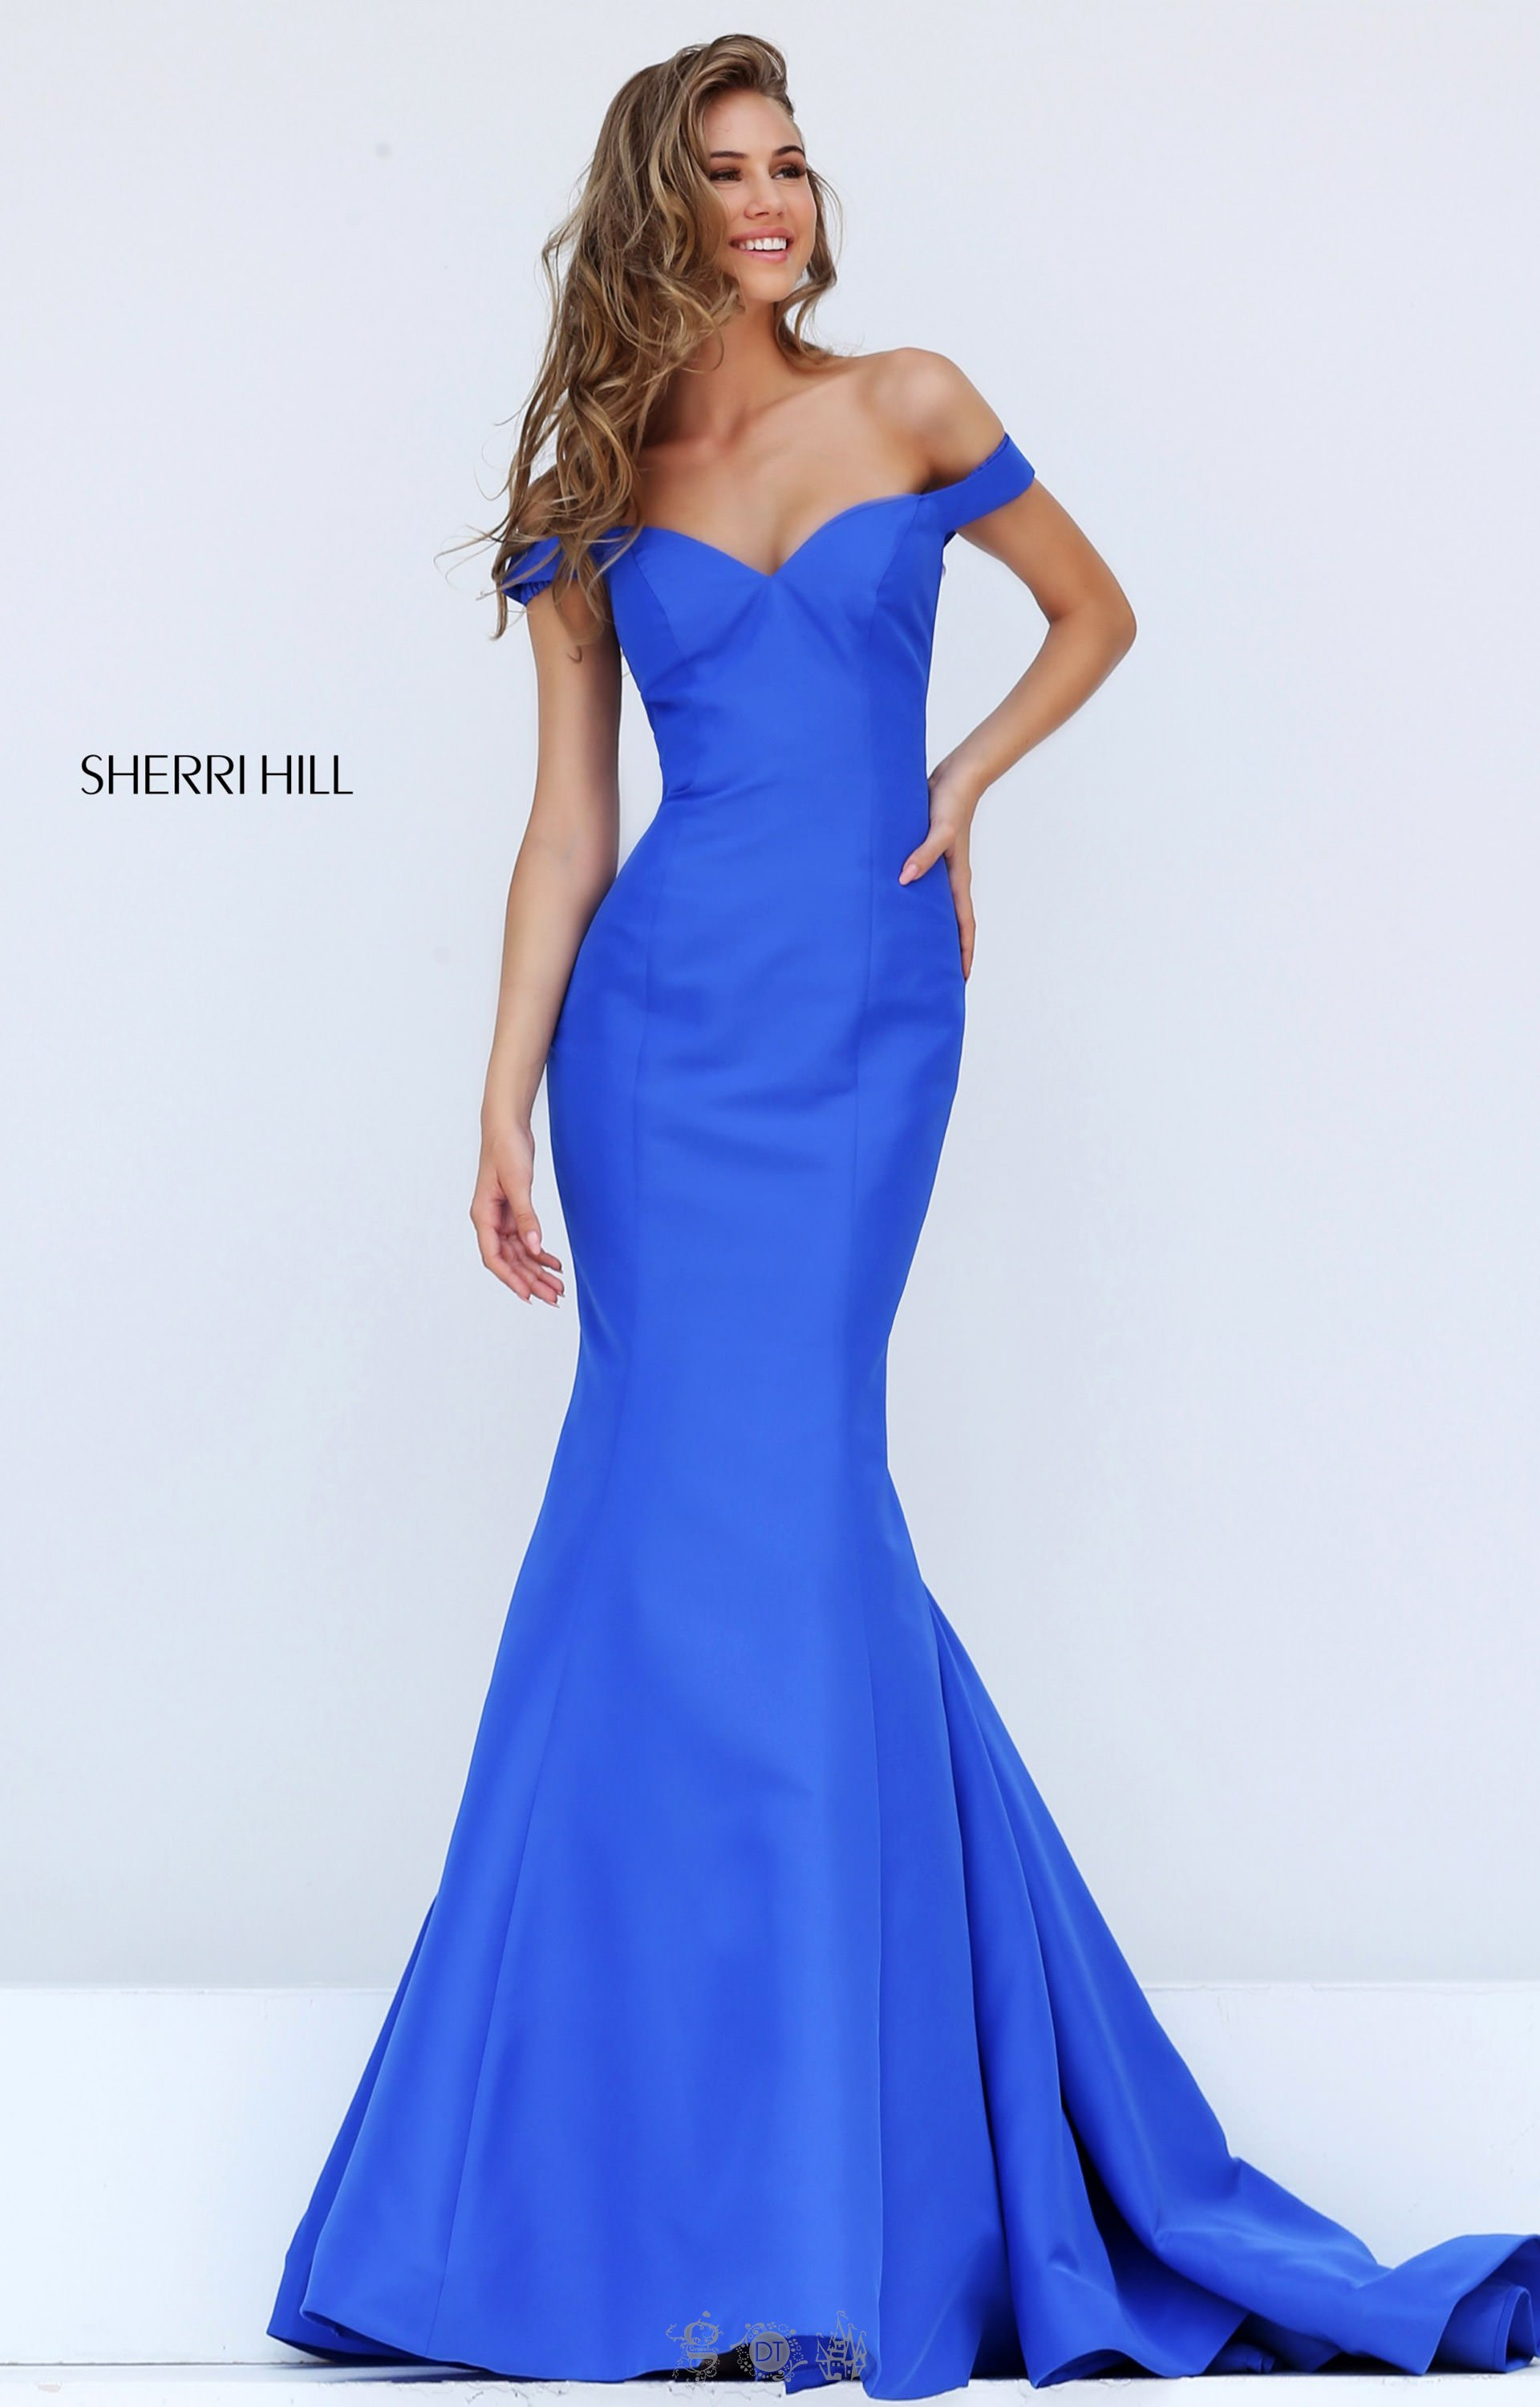 Sherri Hill 50823 - Fitted Mikado Off-the-Shoulder Sweetheart Neckline  Mermaid with Train Prom Dress 38ba8c79a